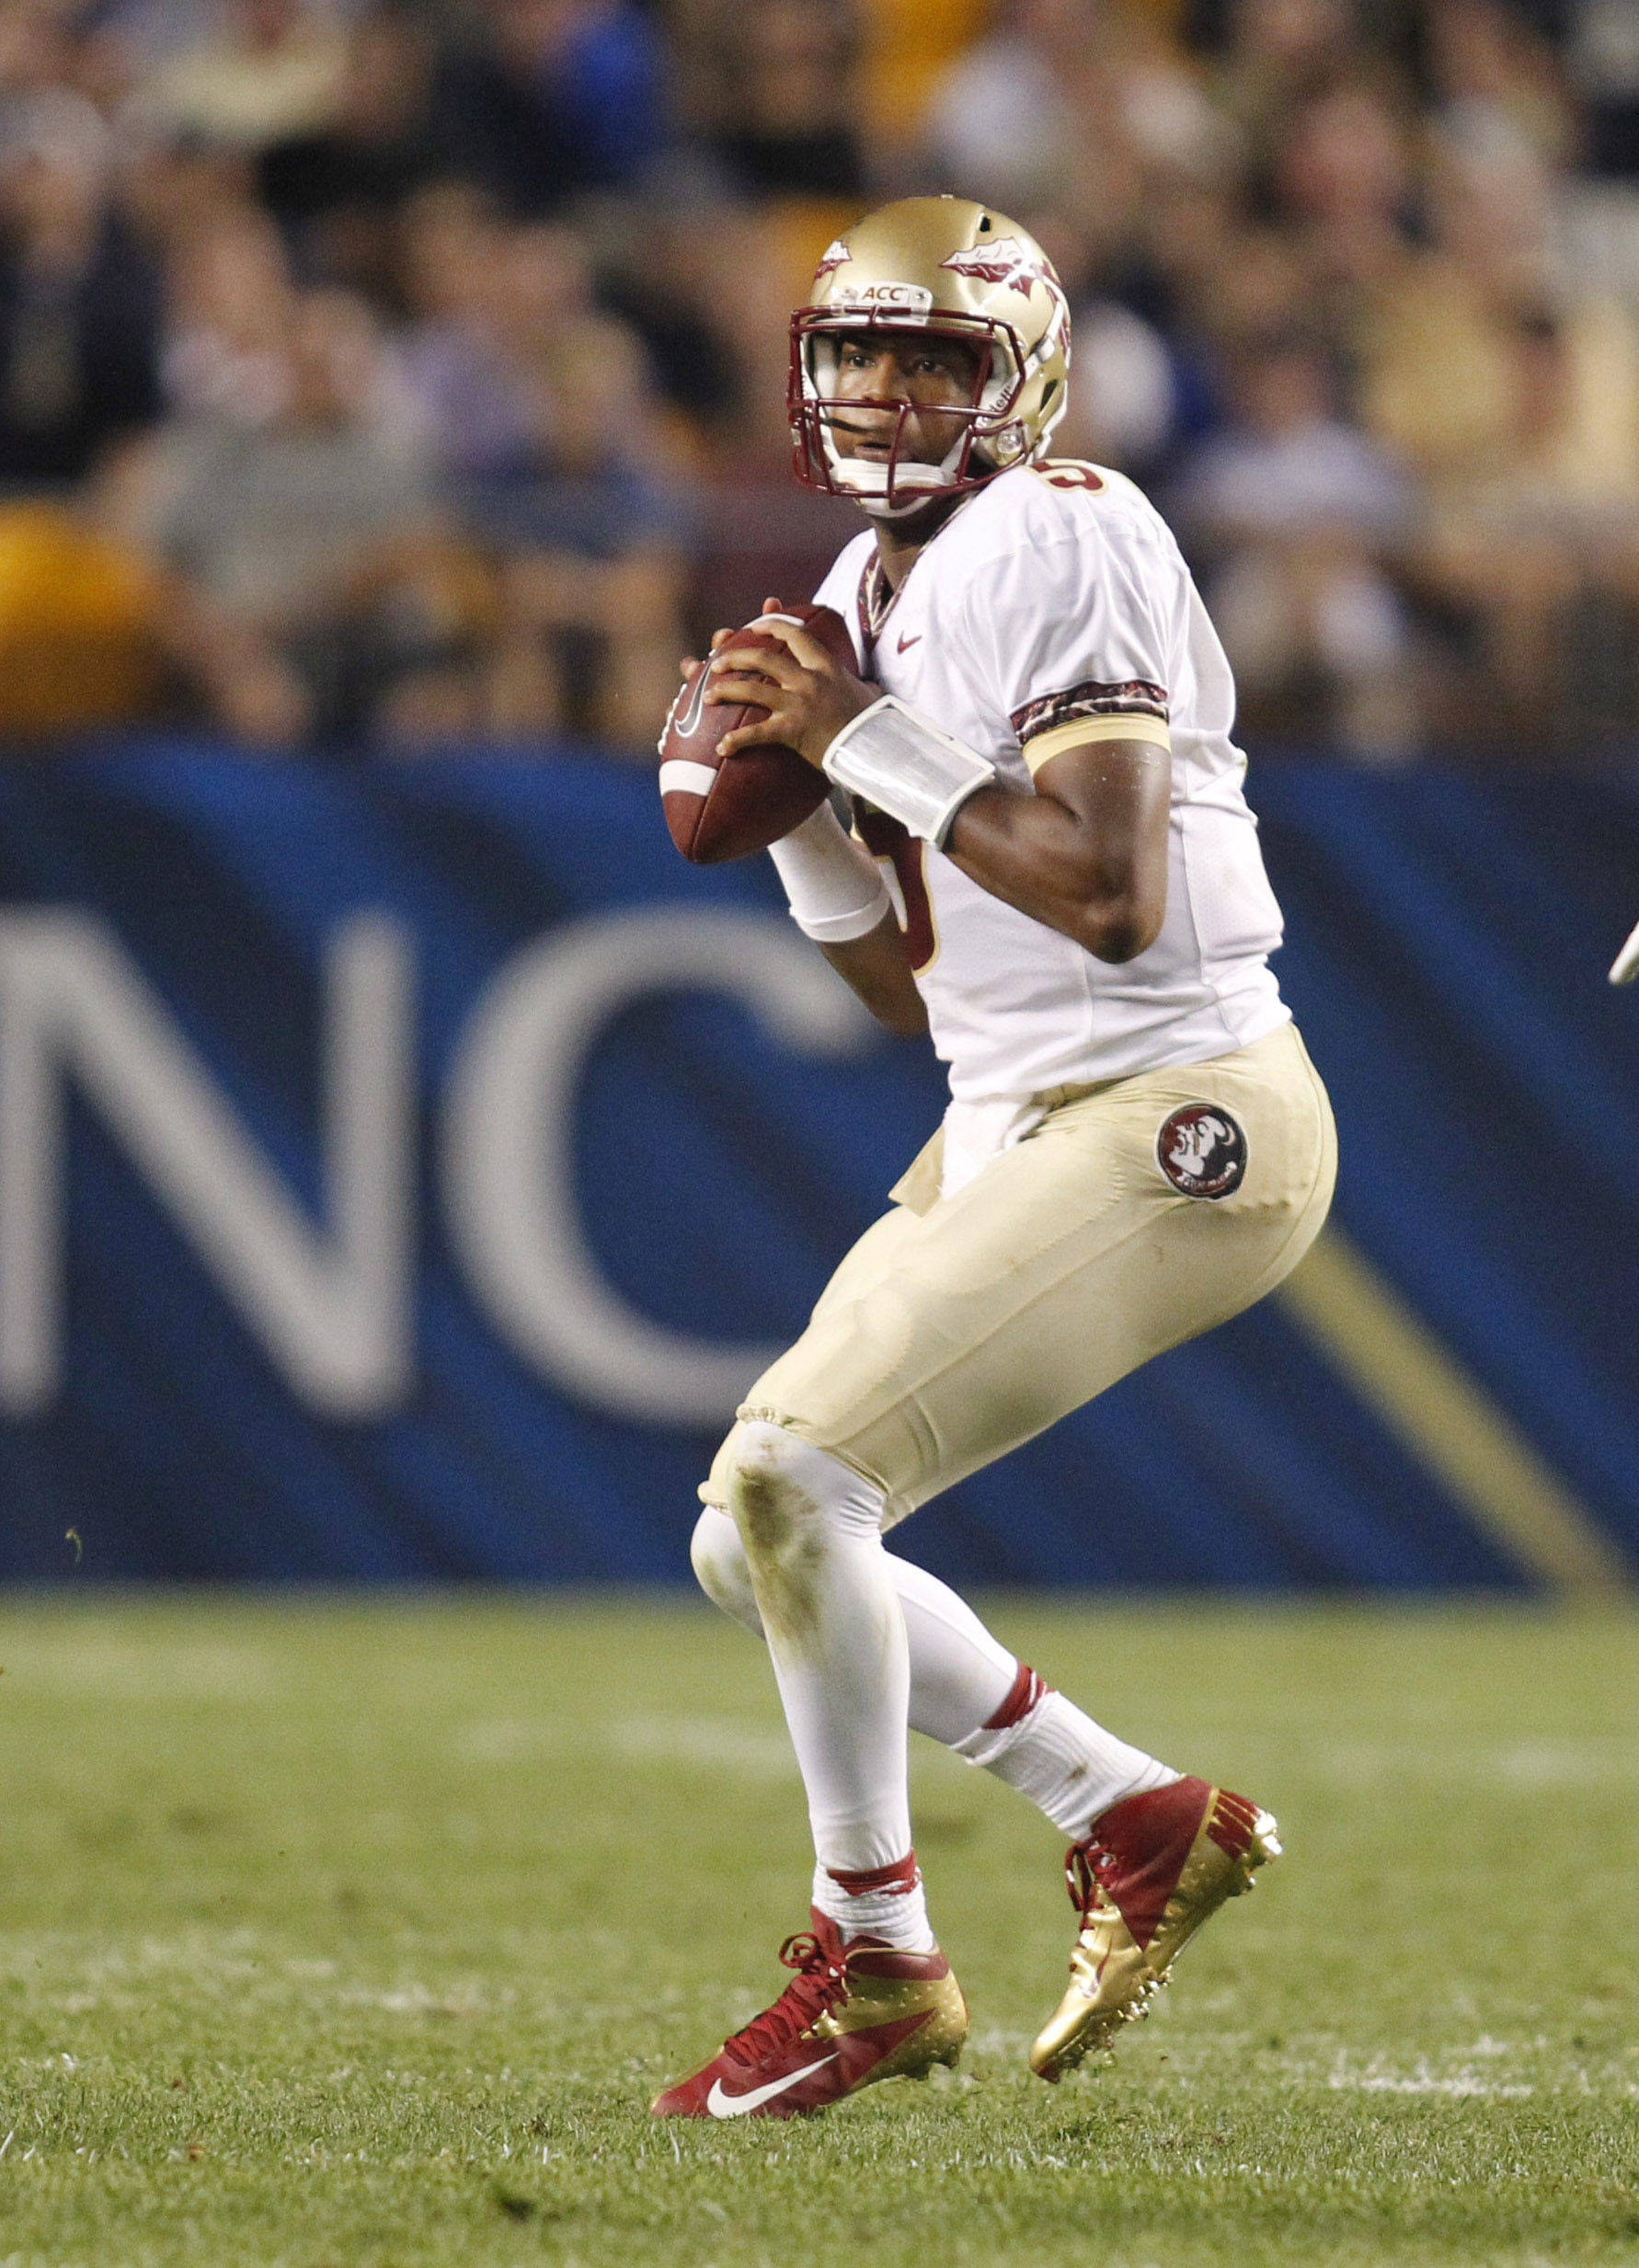 Florida State Seminoles quarterback Jameis Winston (5) looks to pass the ball against the Pittsburgh Panthers during the second quarter at Heinz Field. Mandatory Credit: Charles LeClaire-USA TODAY Sports